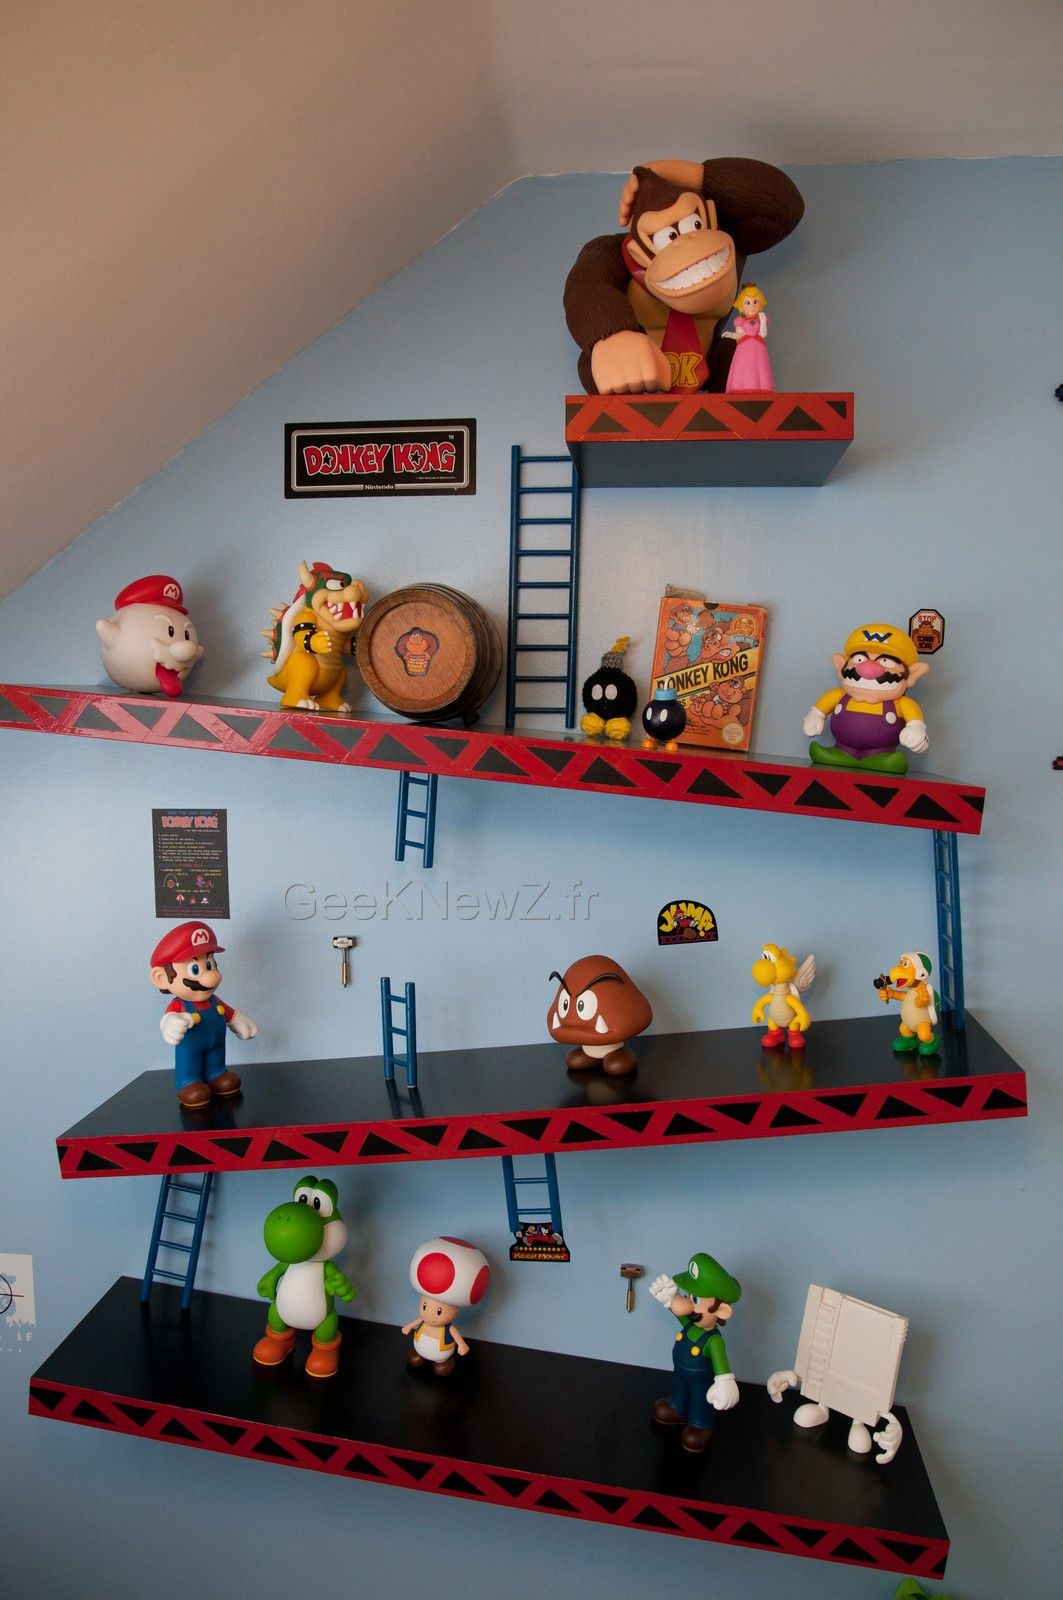 Chambre Geek Donkey Kong Shelves In A Nintendo Room Richard Liu Buske Geek